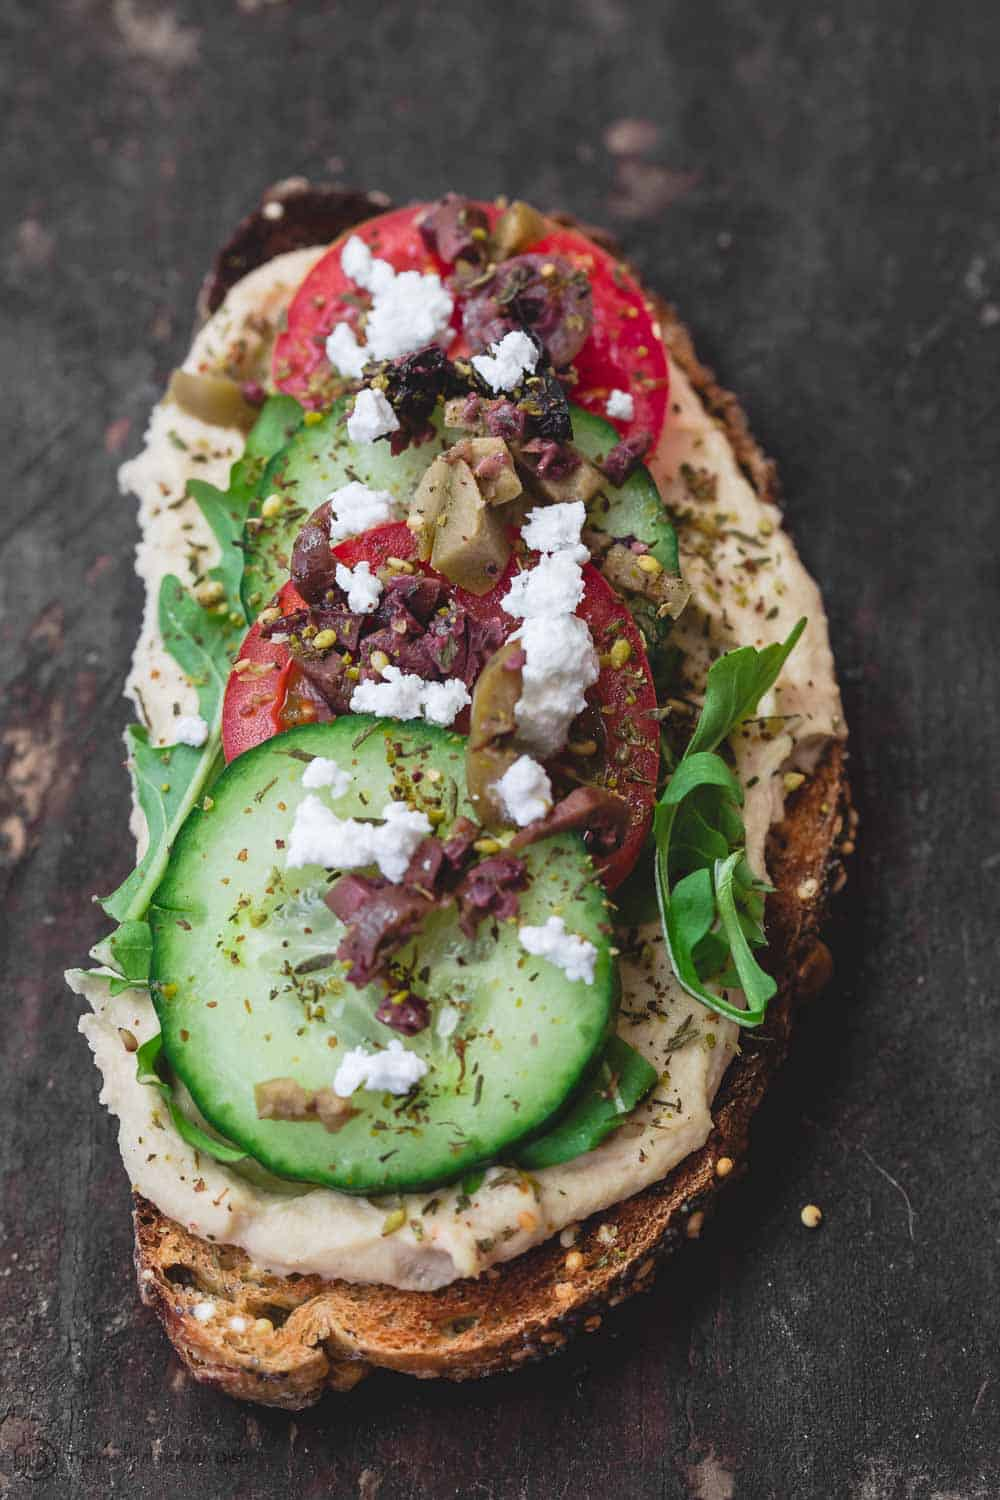 One slice of Mediterranean-style breakfast toast loaded with hummus, arugula, cucumbers, tomatoes, olives, a sprinkle of za'atar and feta cheese